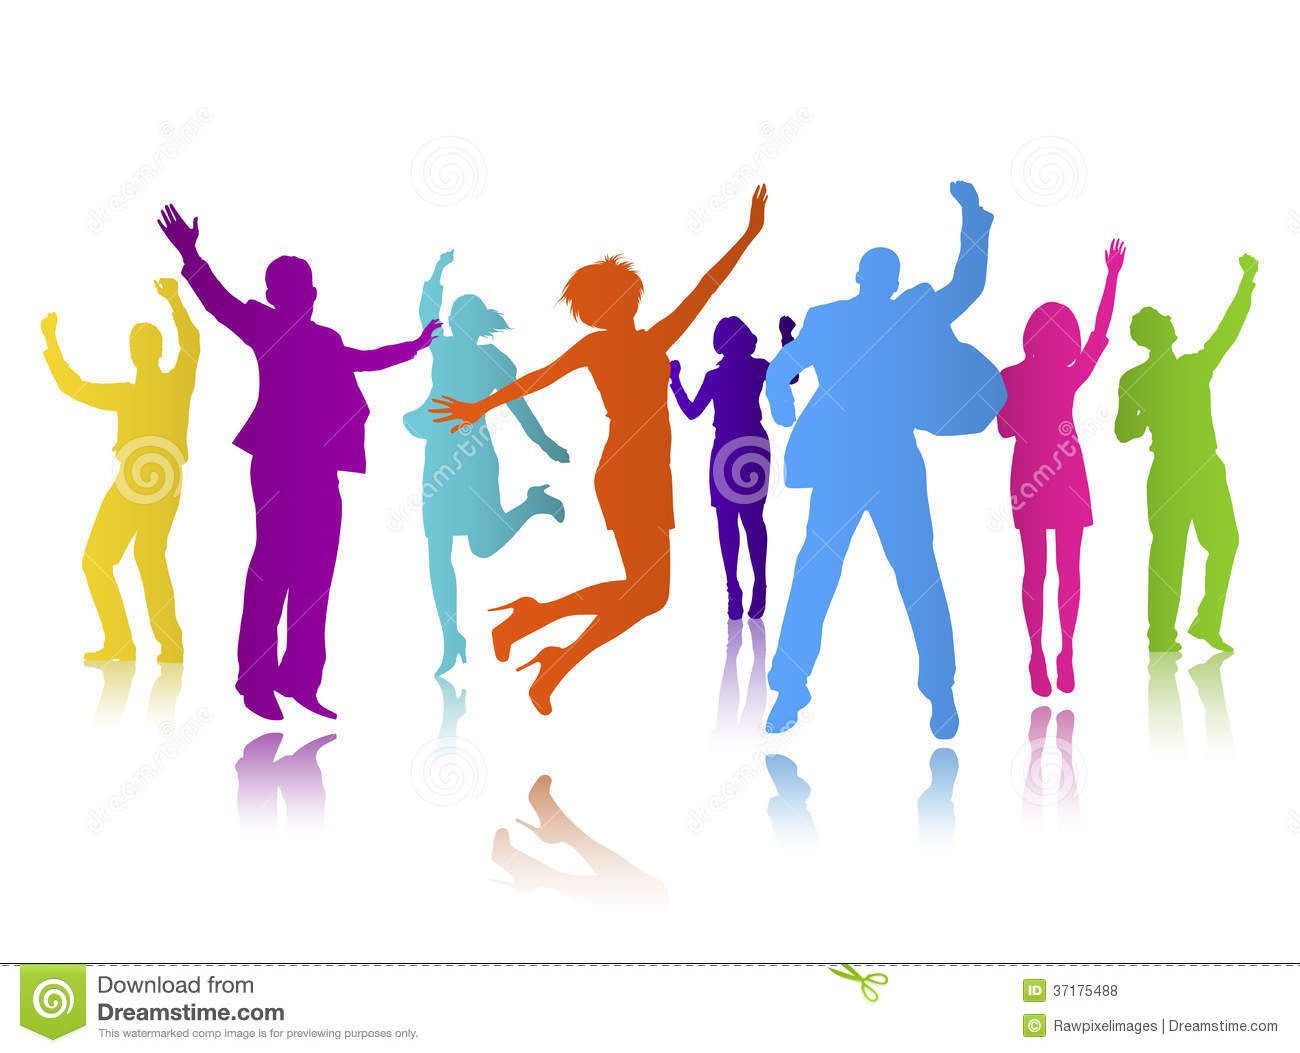 Celebration clipart group, Celebration group Transparent.